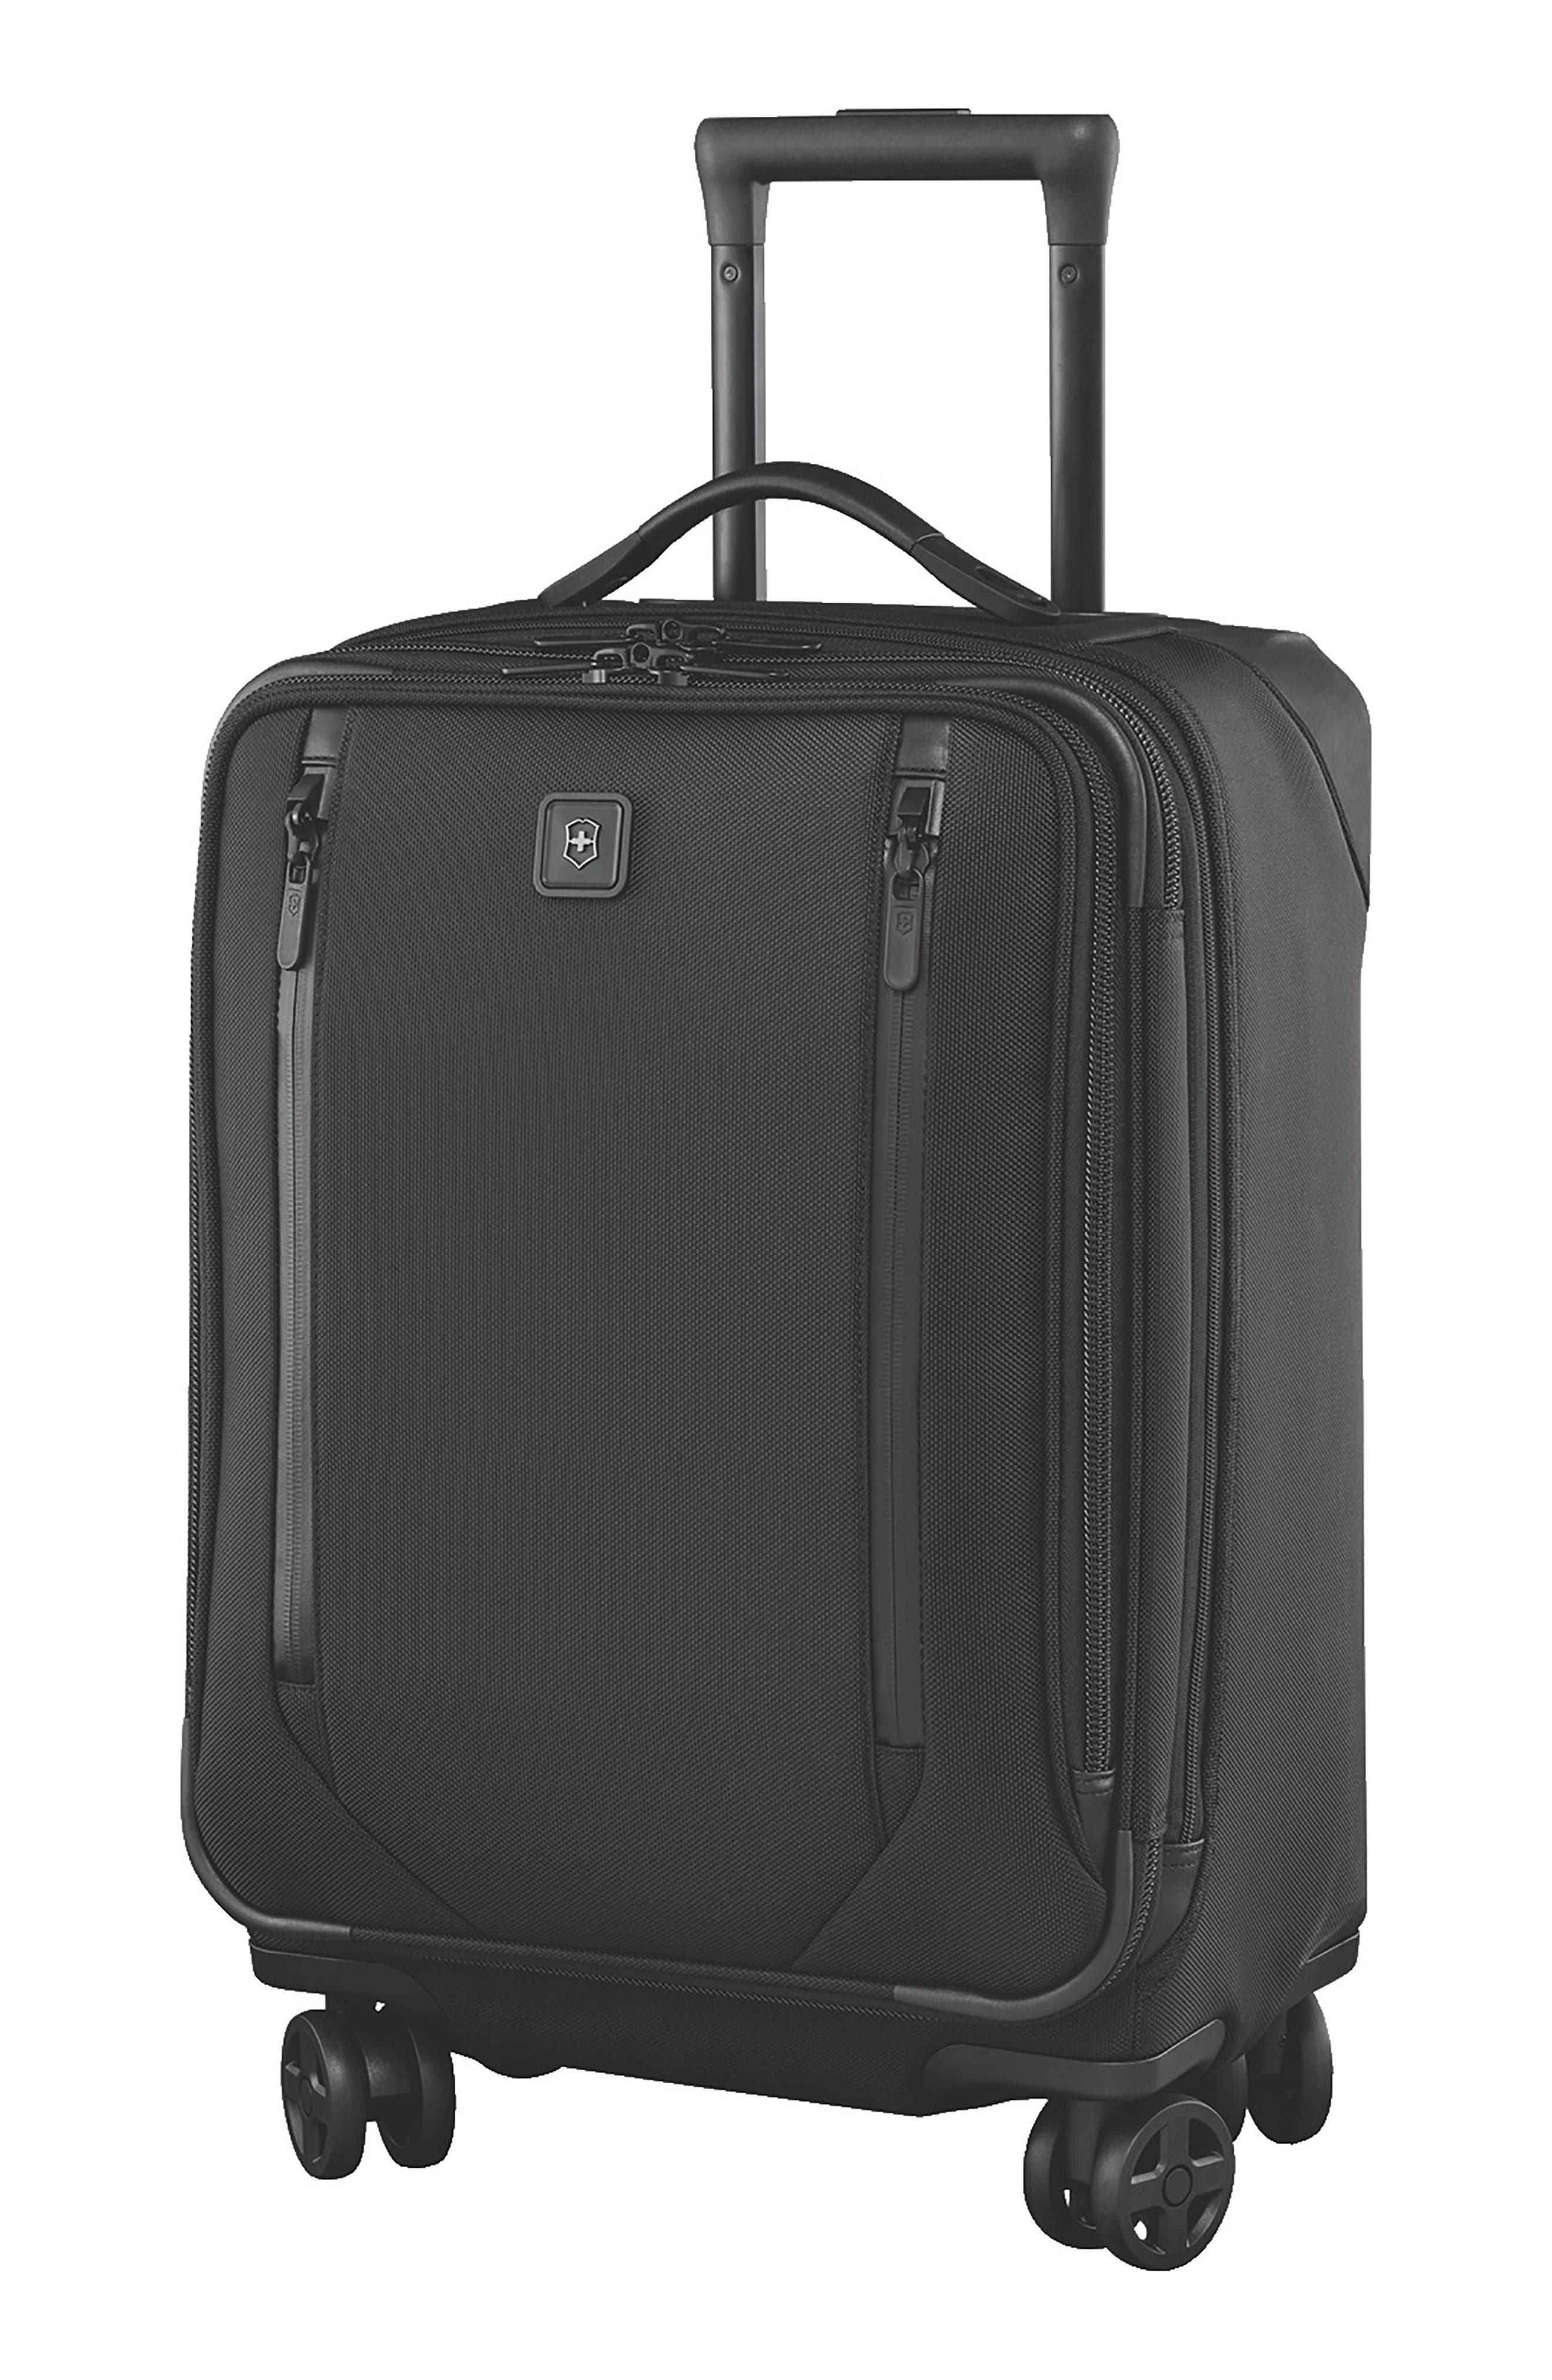 Main Image - Victorinox Swiss Army® Lexicon 2.0 24-Inch Wheeled Suitcase